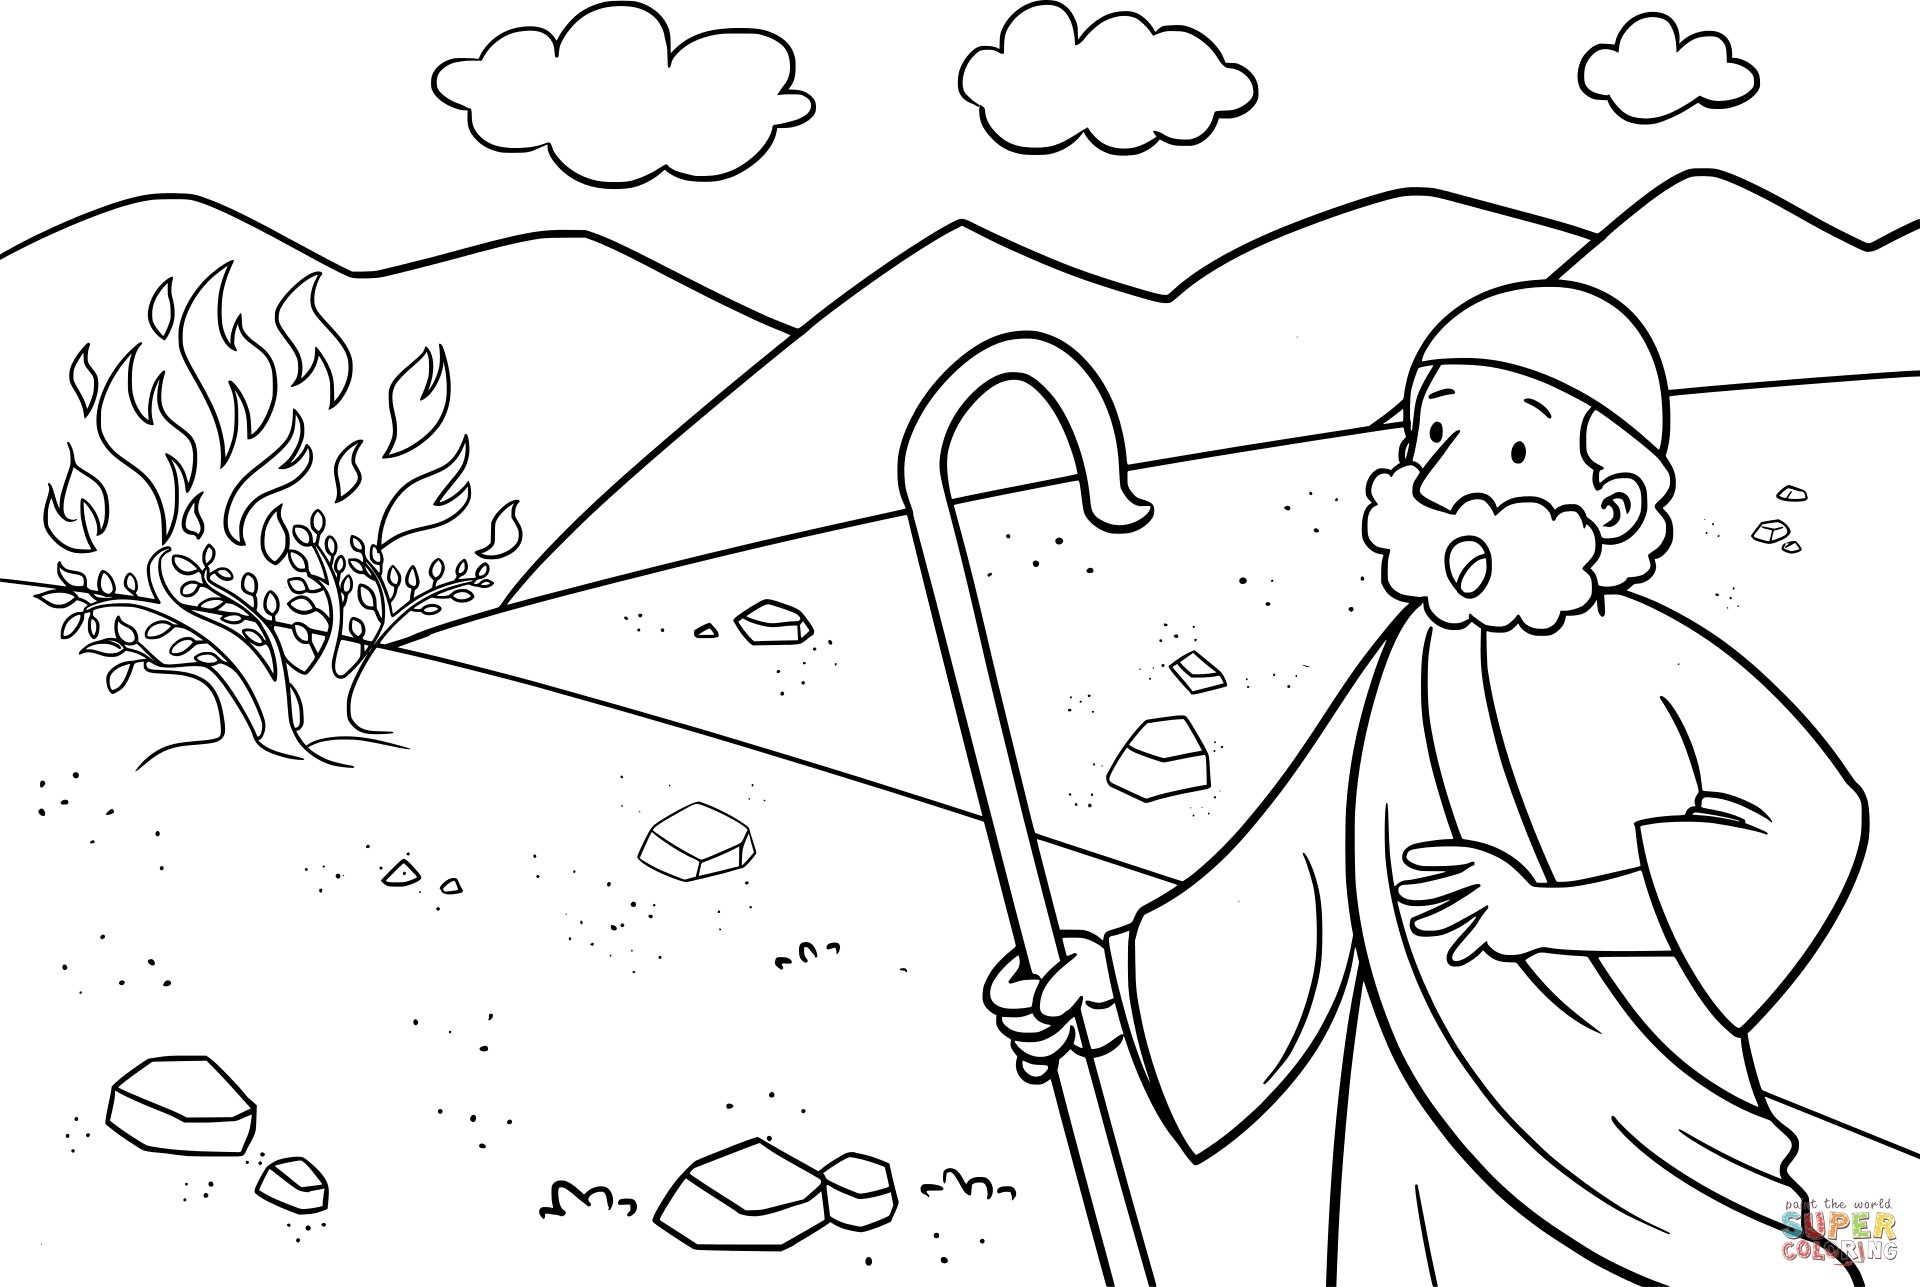 Moses and the Burning Bush Coloring Pages  Collection 17l - Free Download